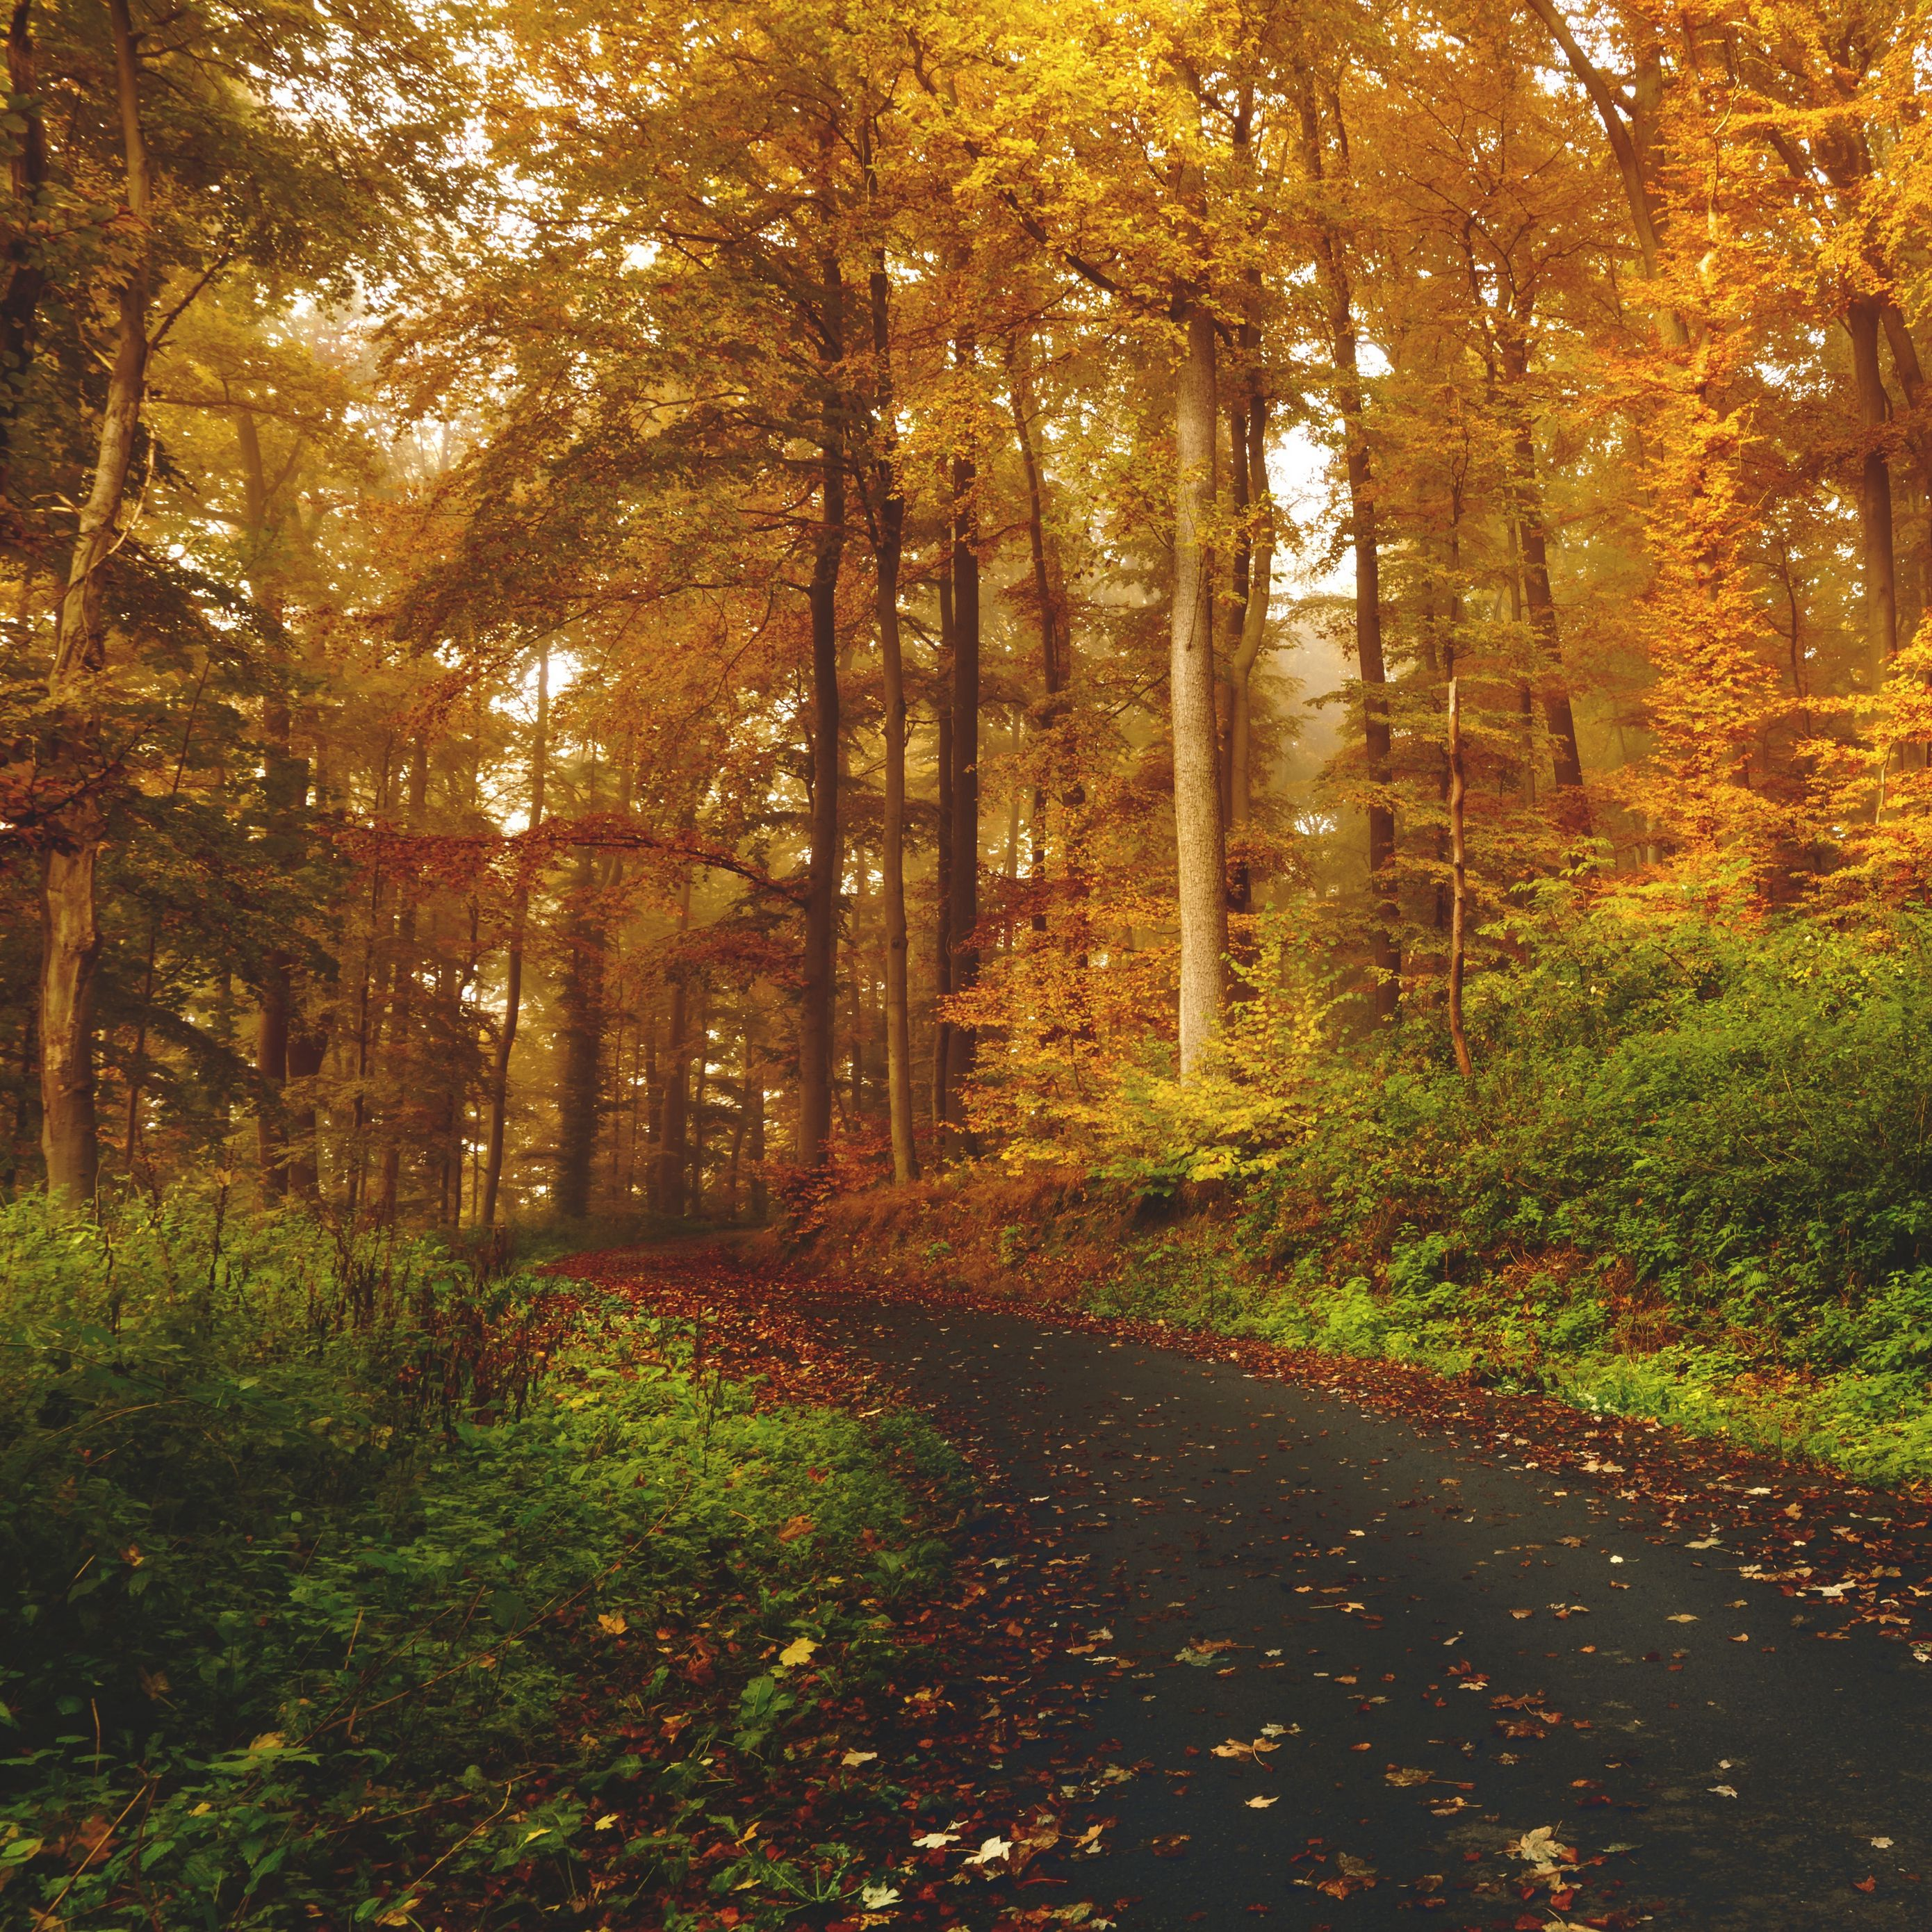 2780x2780 Wallpaper autumn, trees, forest, trail